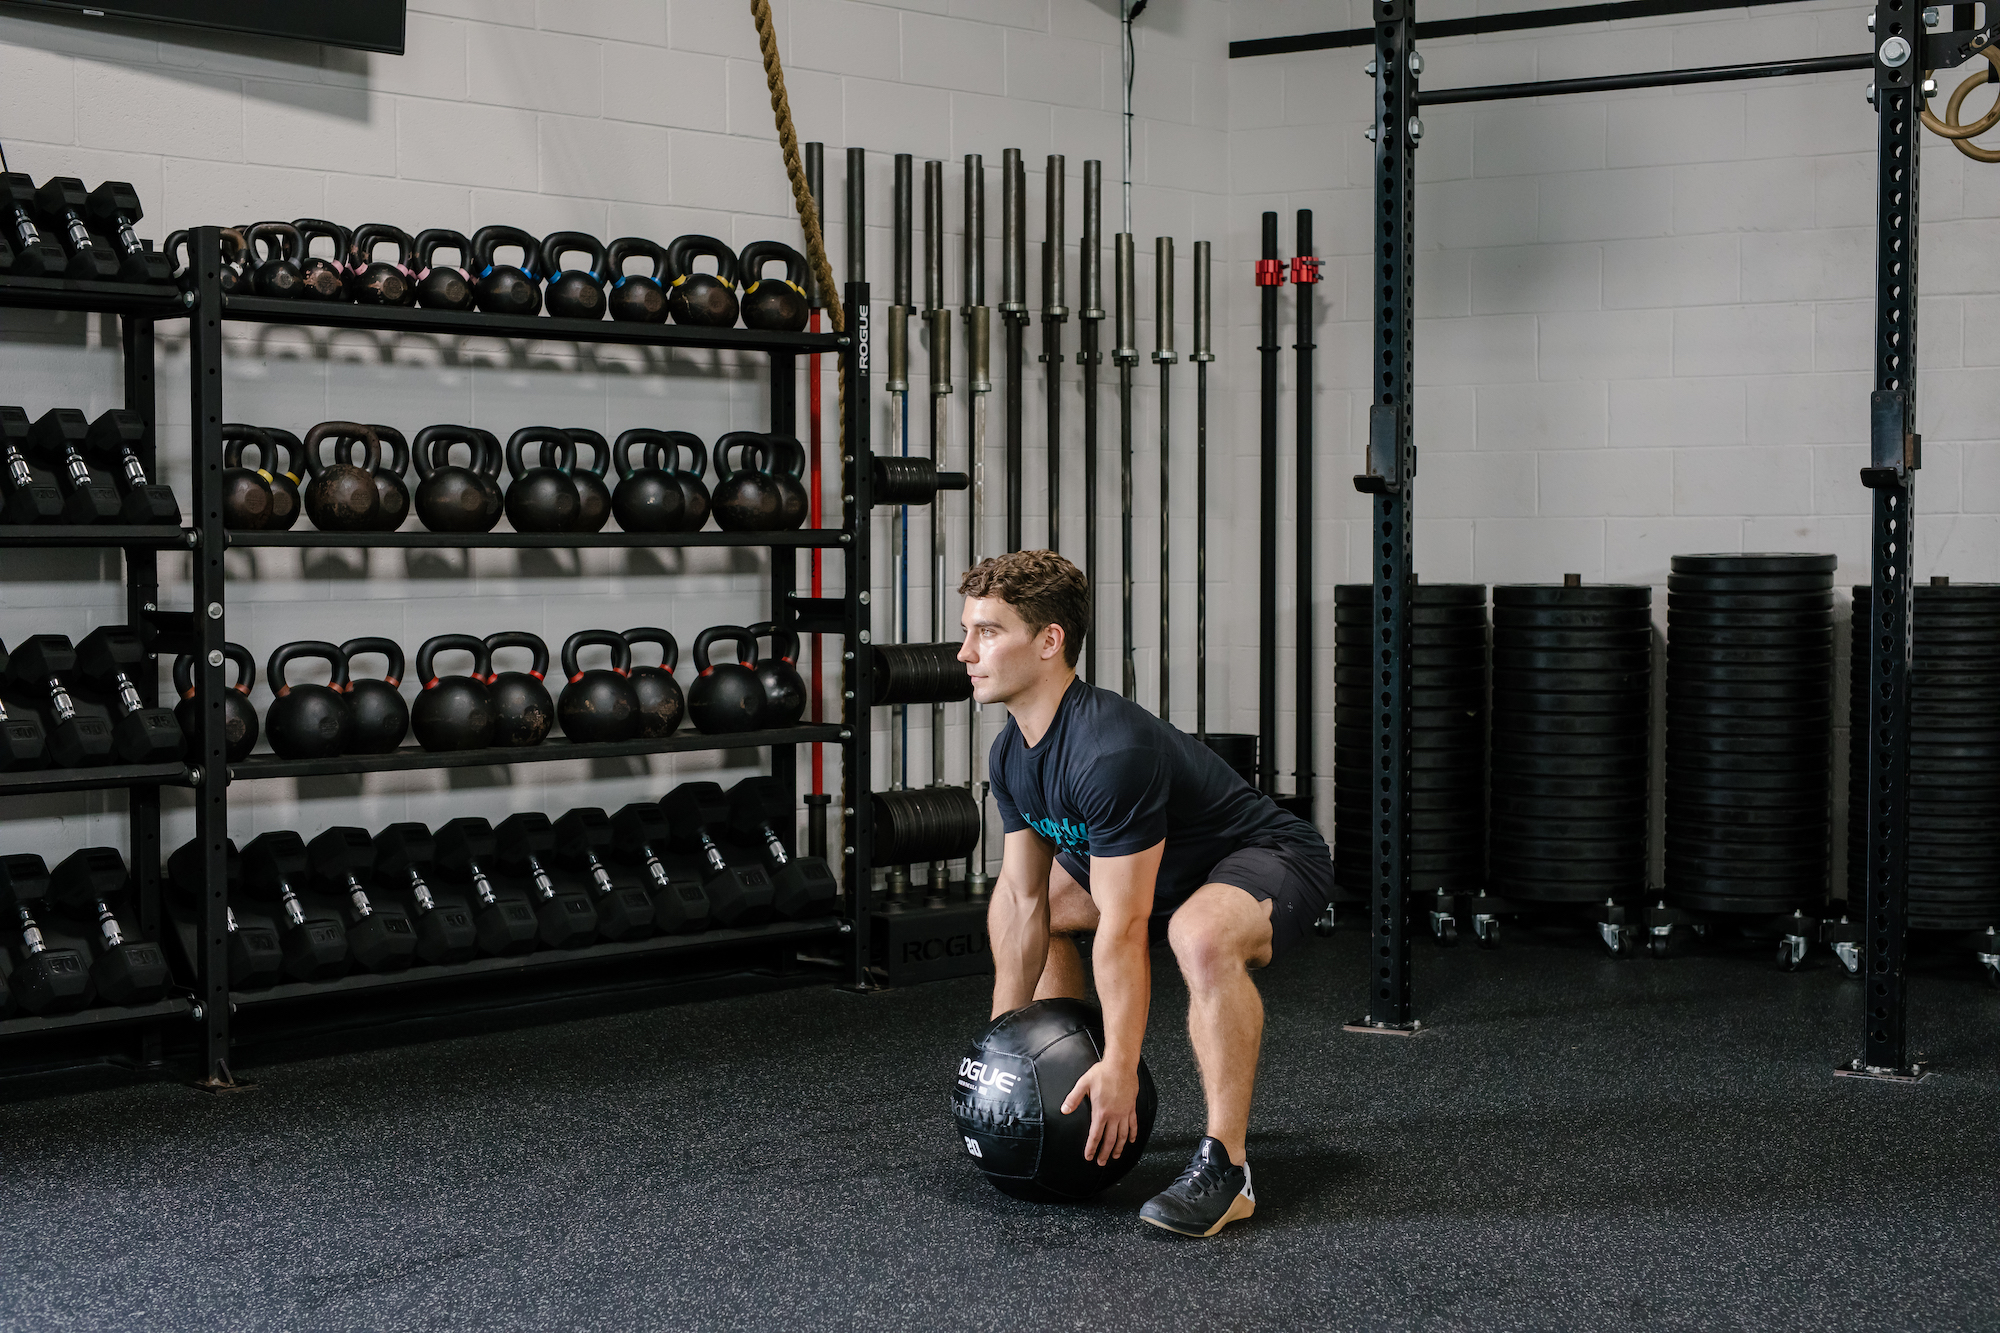 Points of Performance: The Medicine Ball Clean